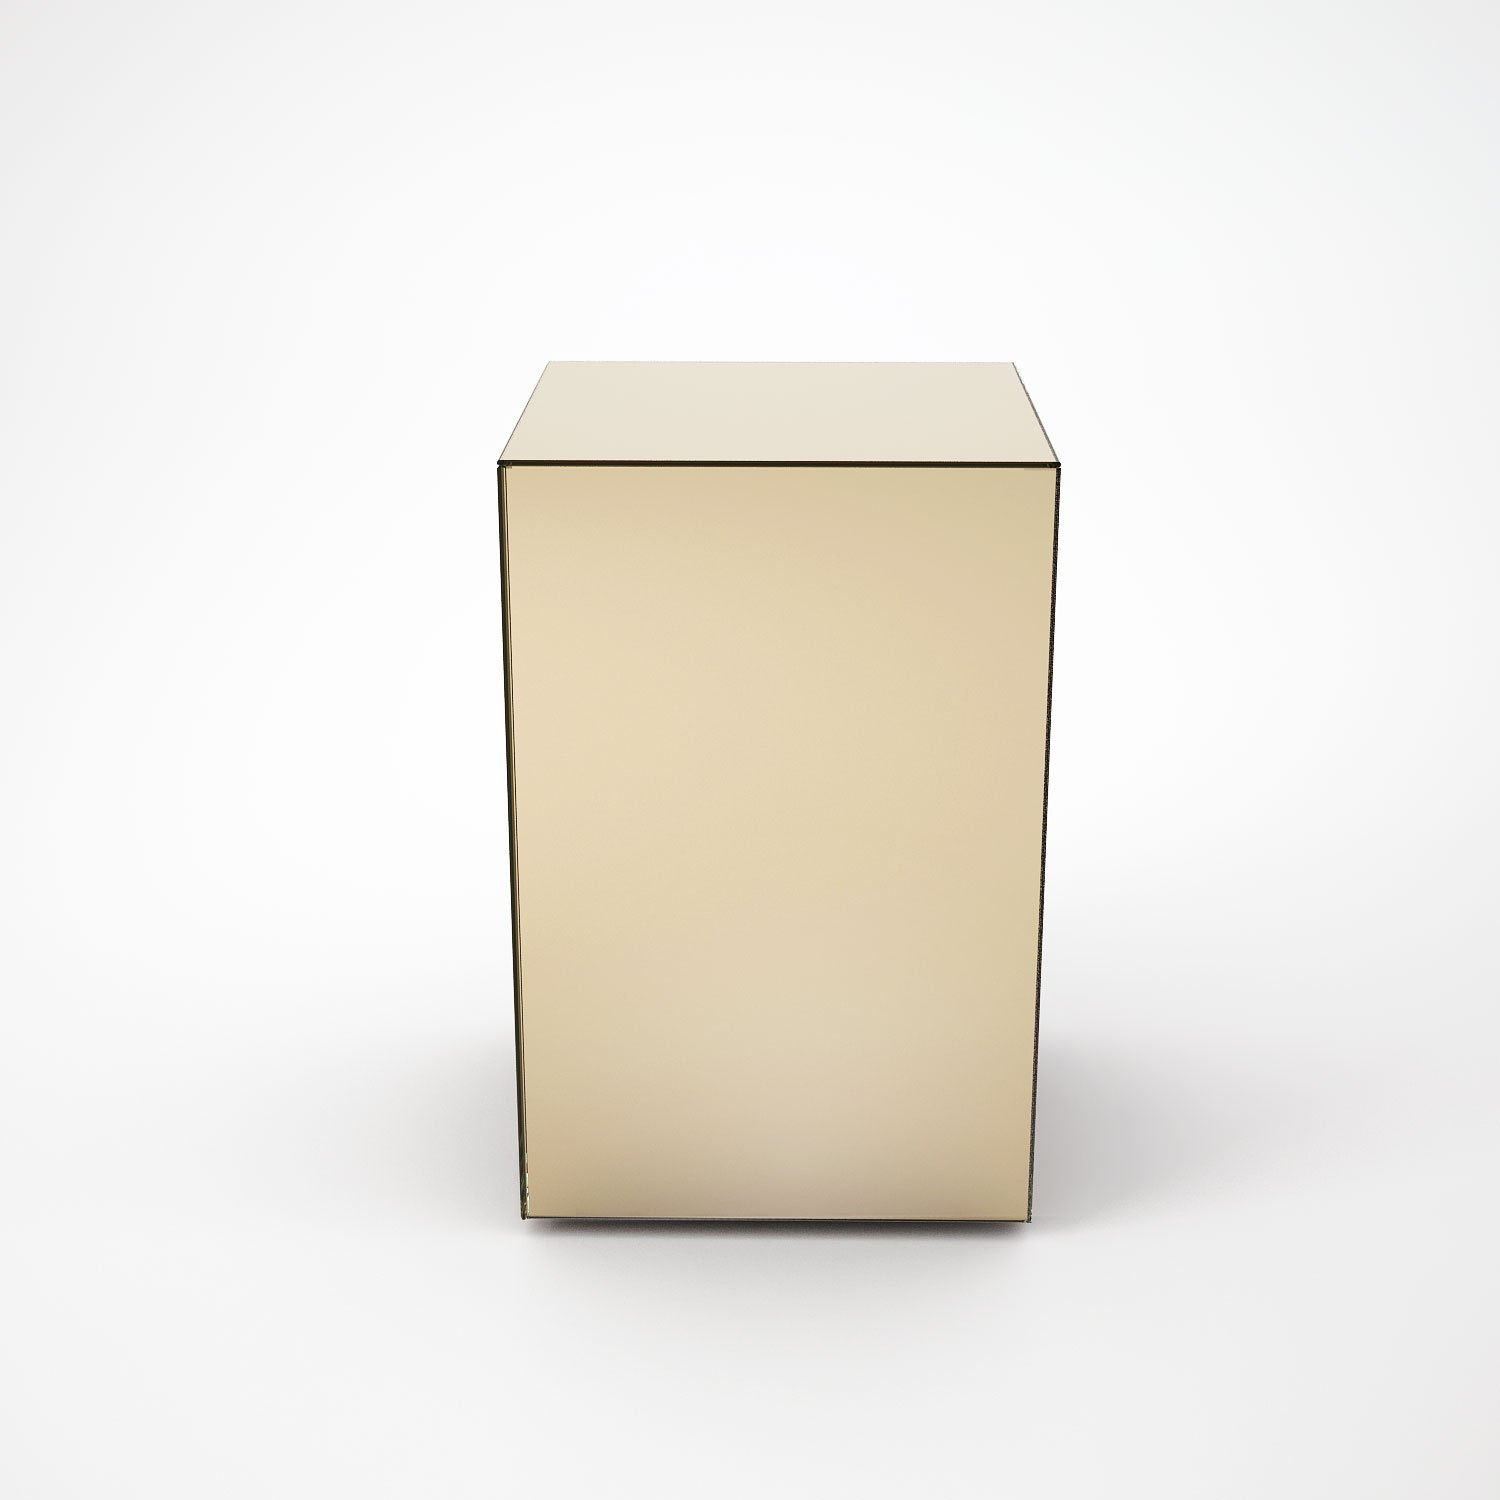 Bronze mirrored side table by mirrorbox klarity glass furniture Mirror glass furniture